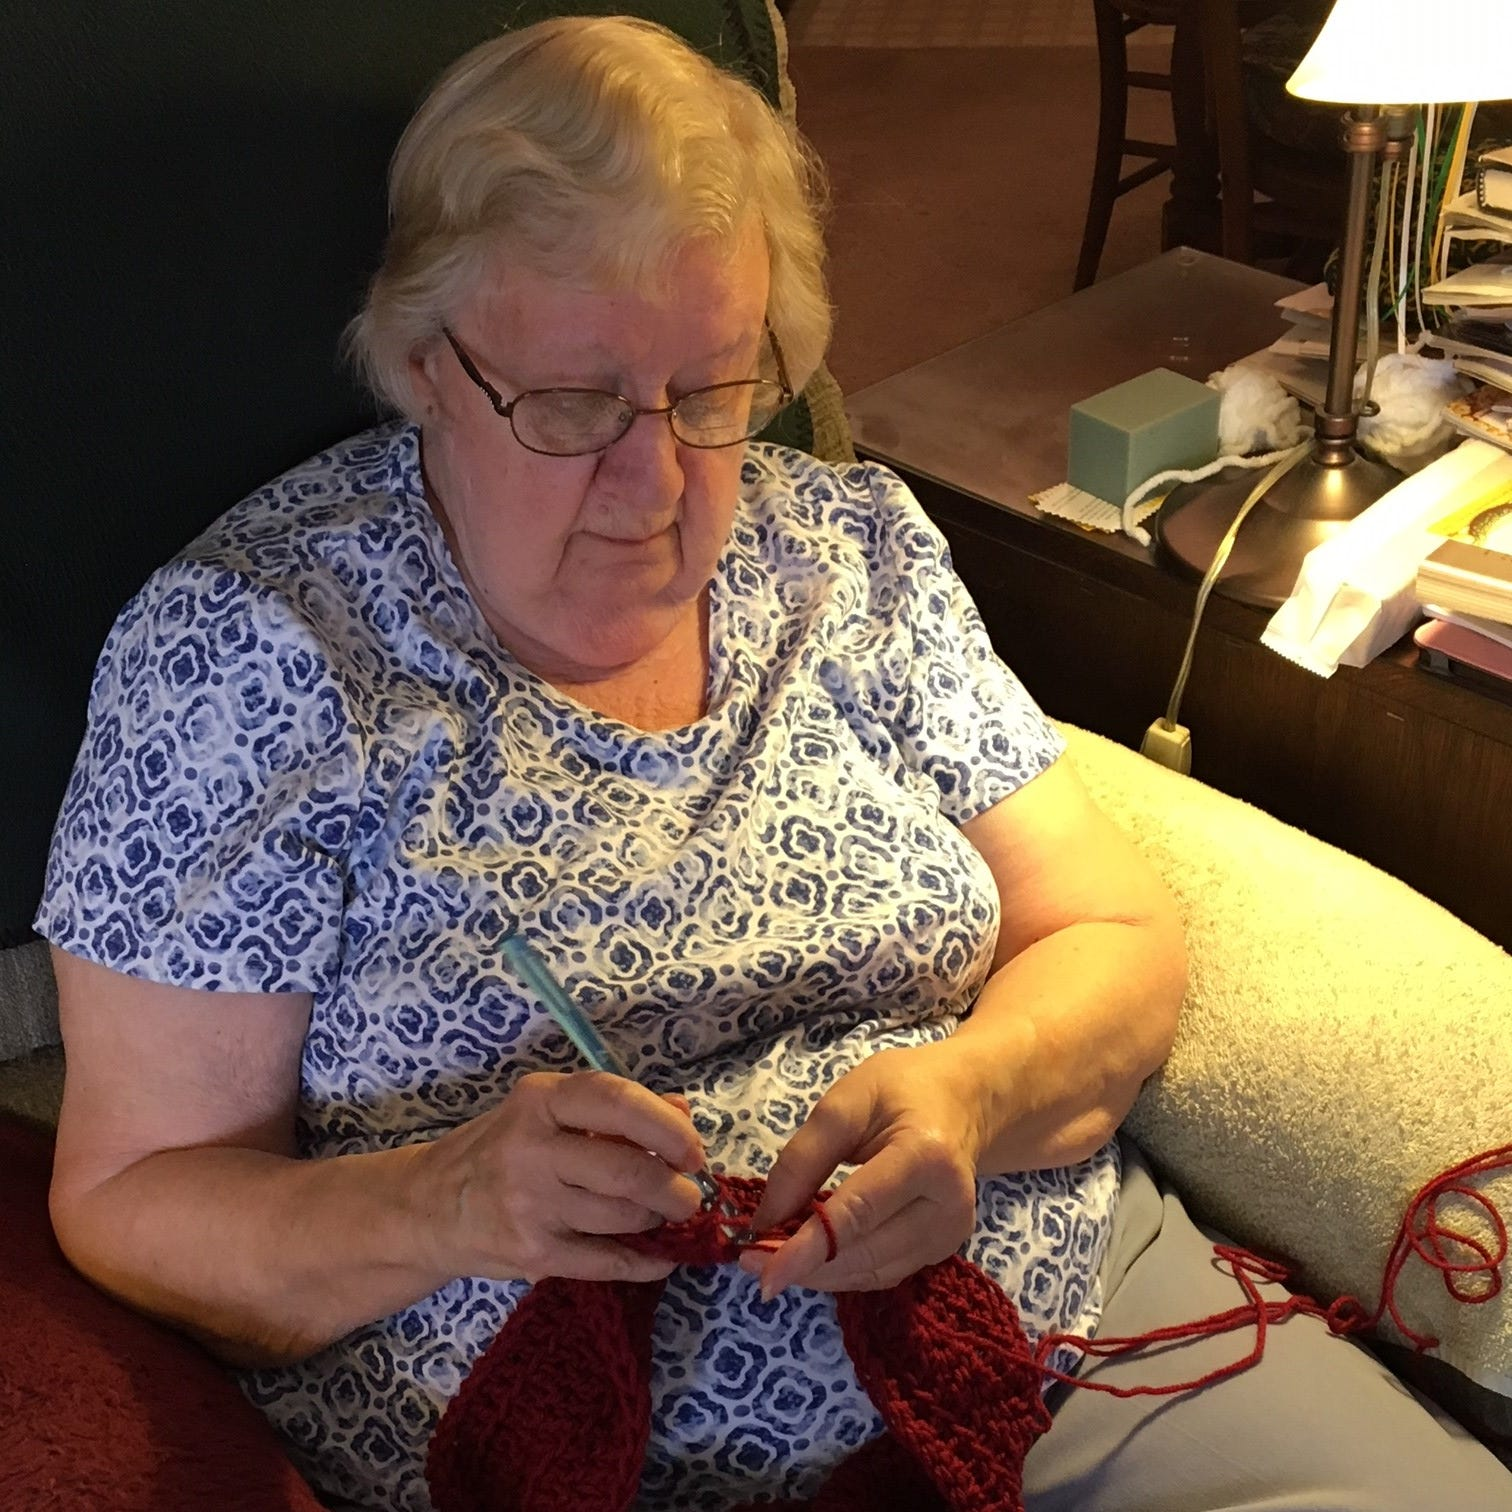 Nearly 15 years and 5,000 donations: Fond du Lac hospice volunteer crochets to make a difference